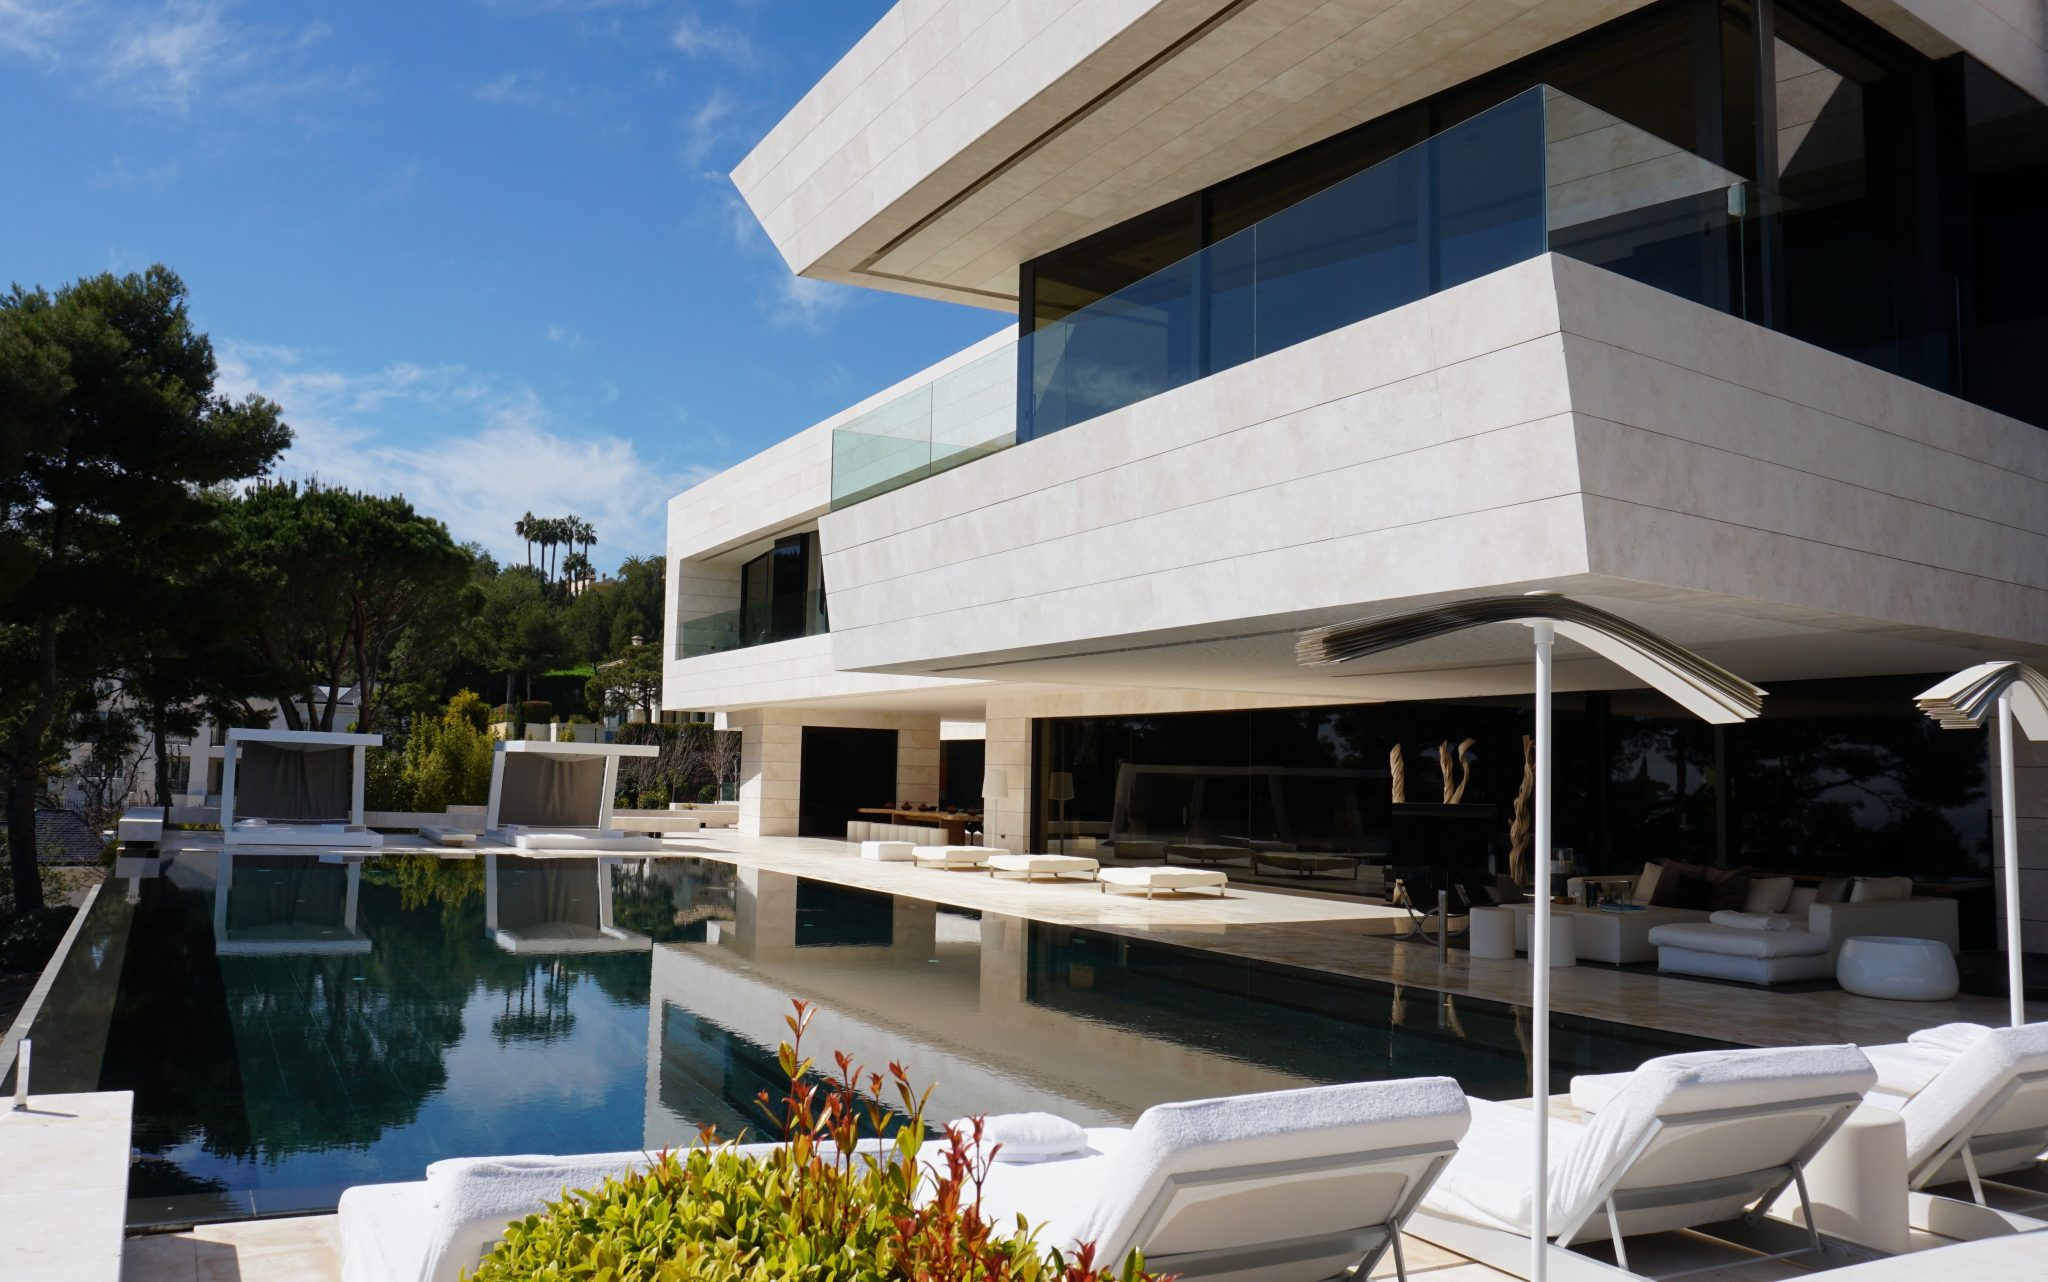 Charming One Of The Finest Villas In Marbella